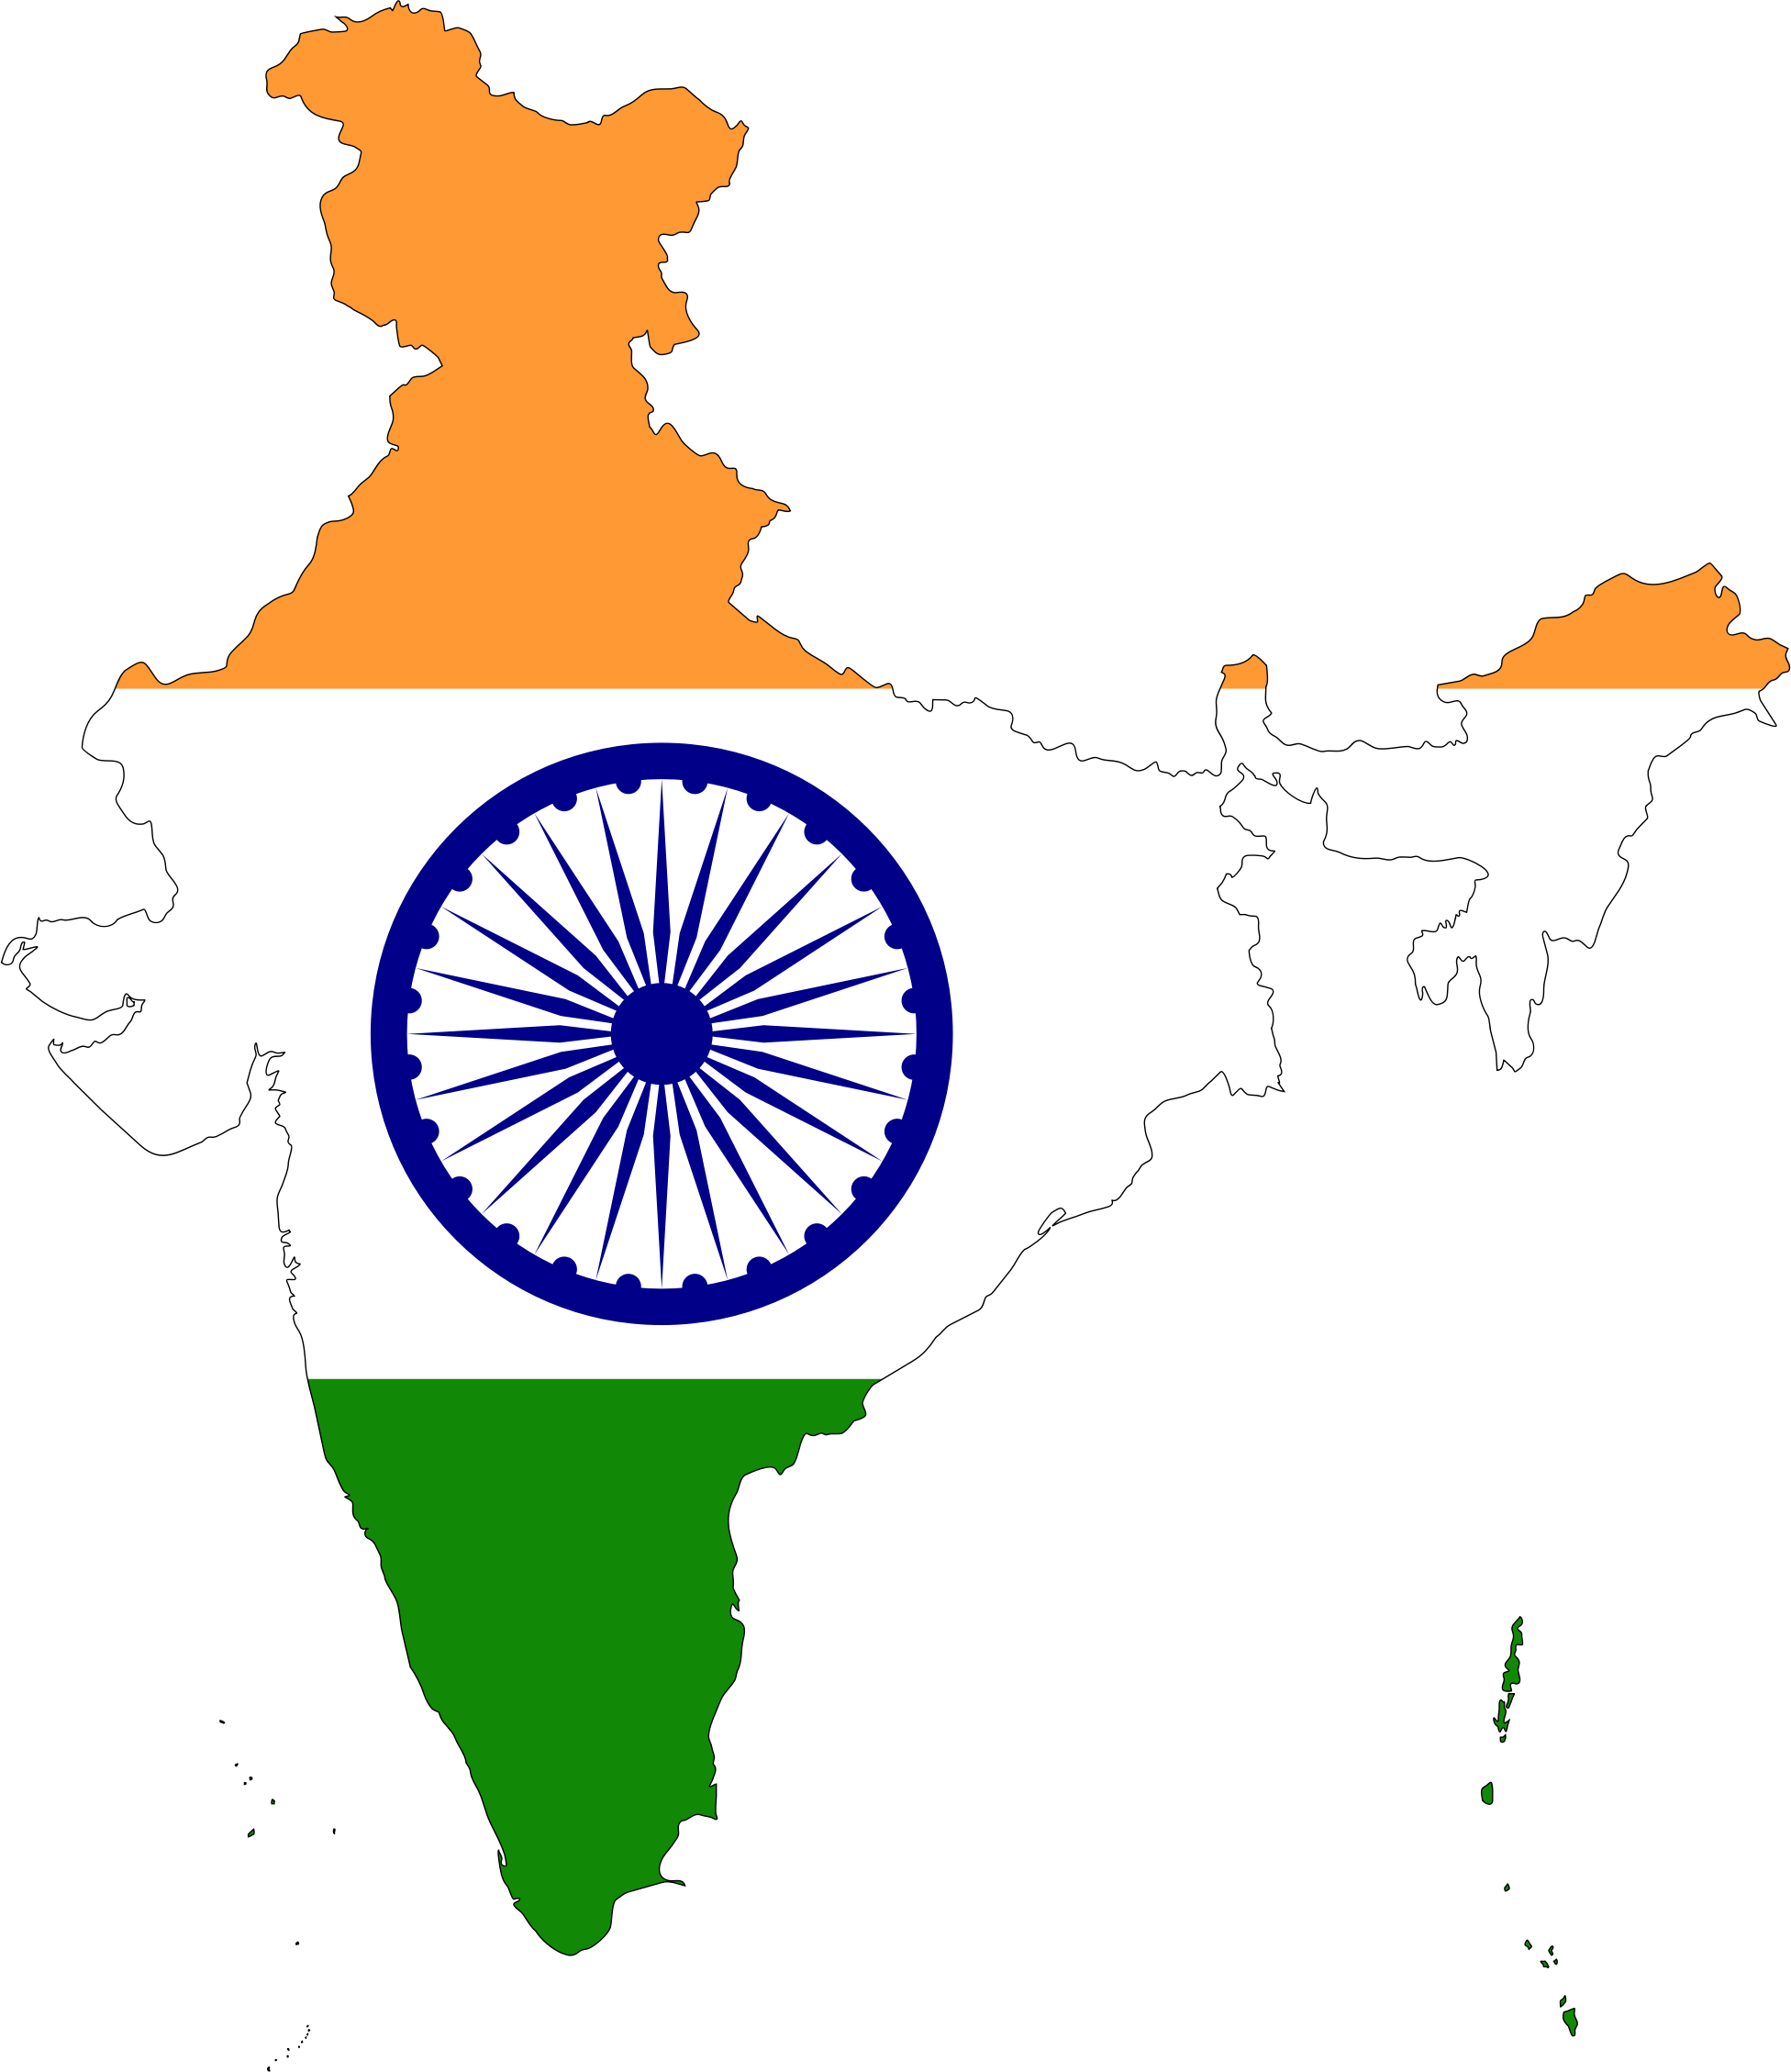 India transparent map. Clipart flag with stroke